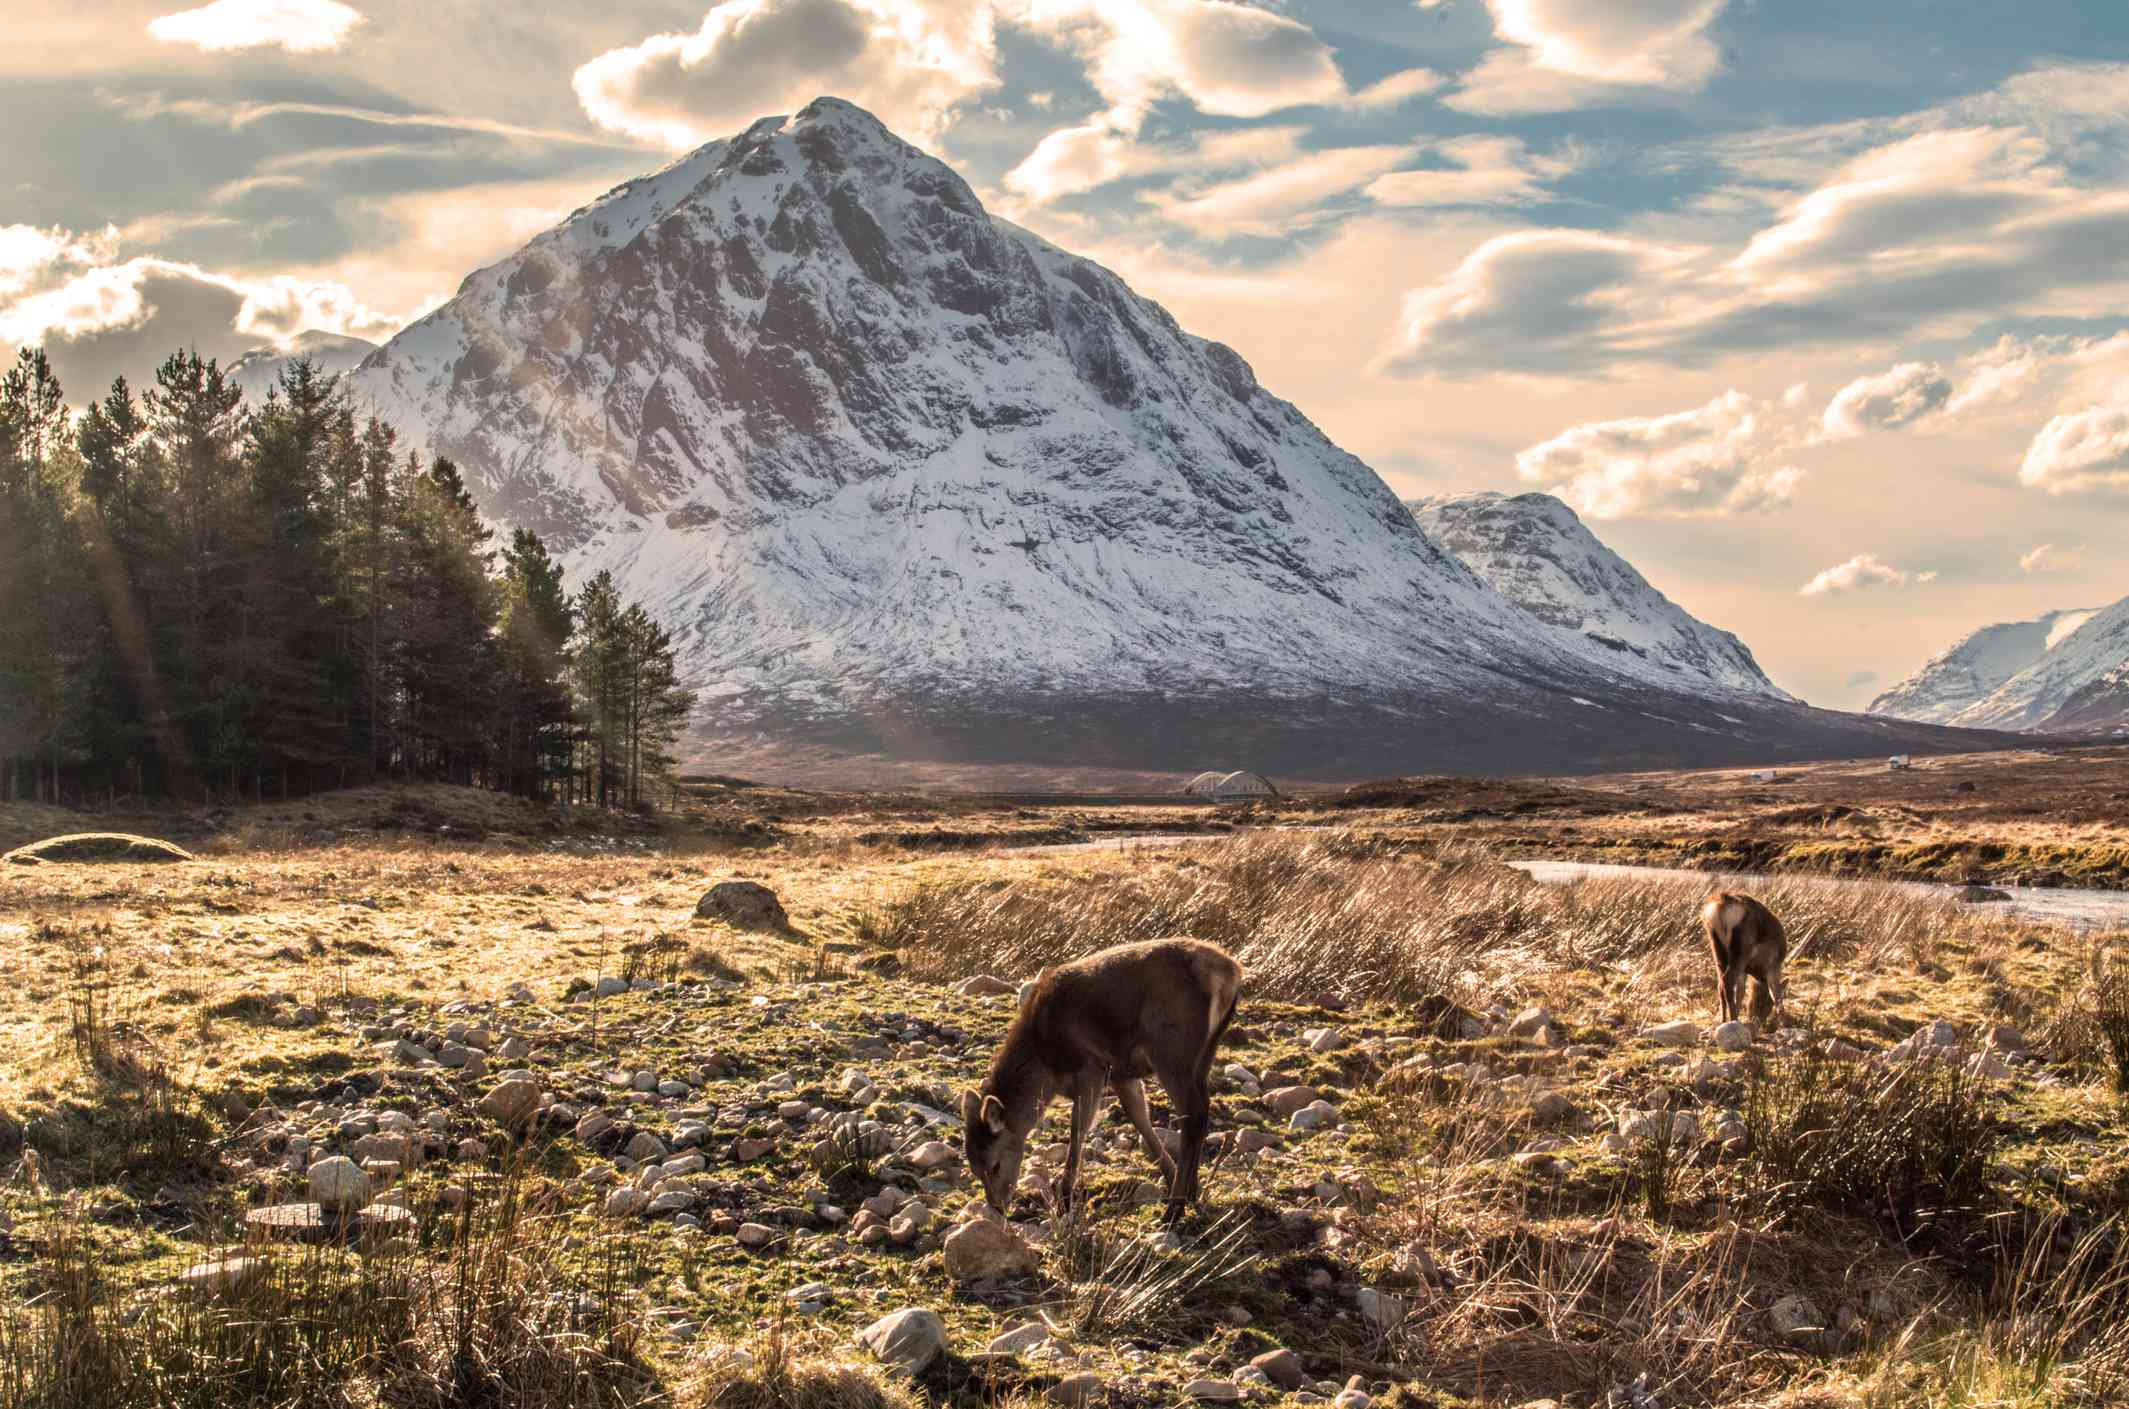 Snow on Buachaille Etive Mor, Glencoe, Scotland - stock photo Buachaille Etive Mor on a fine winters day, with red deer grazing and the River Etive curving into the foreground. Taken at the Kings House, Glencoe, Argyll and Bute, Scotland, March 2014.